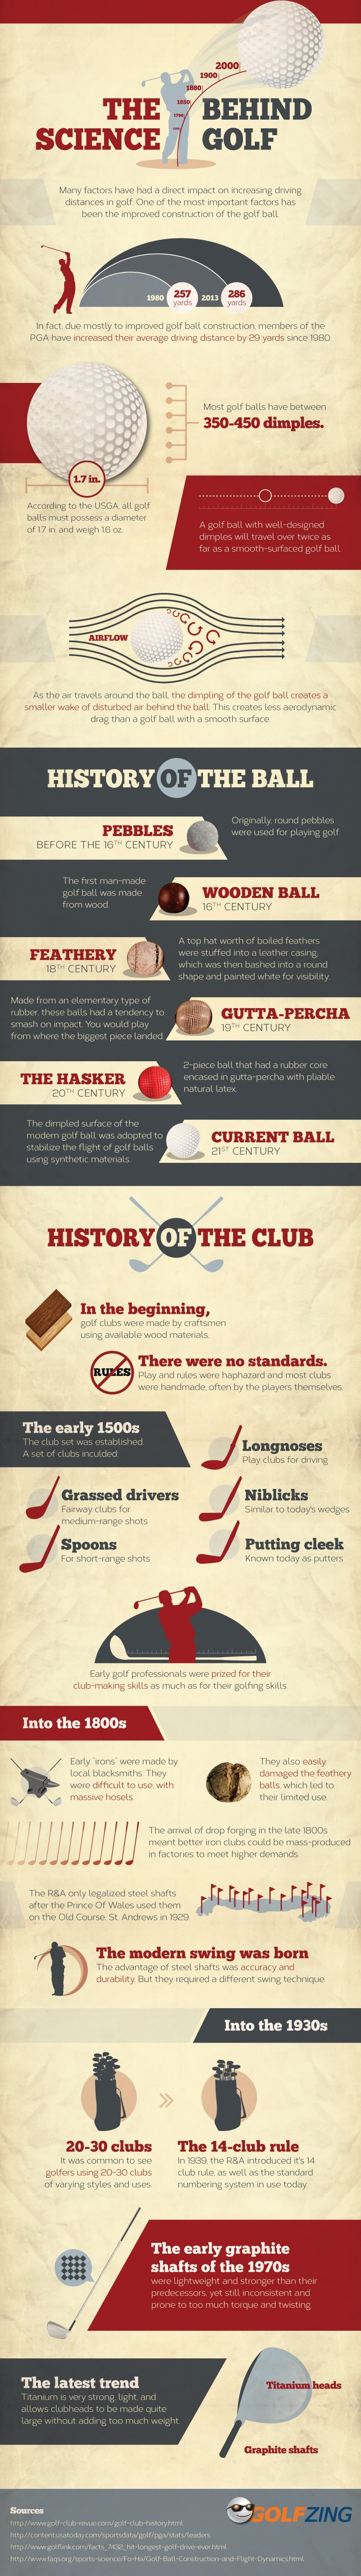 The Science Behind Golf #infographic